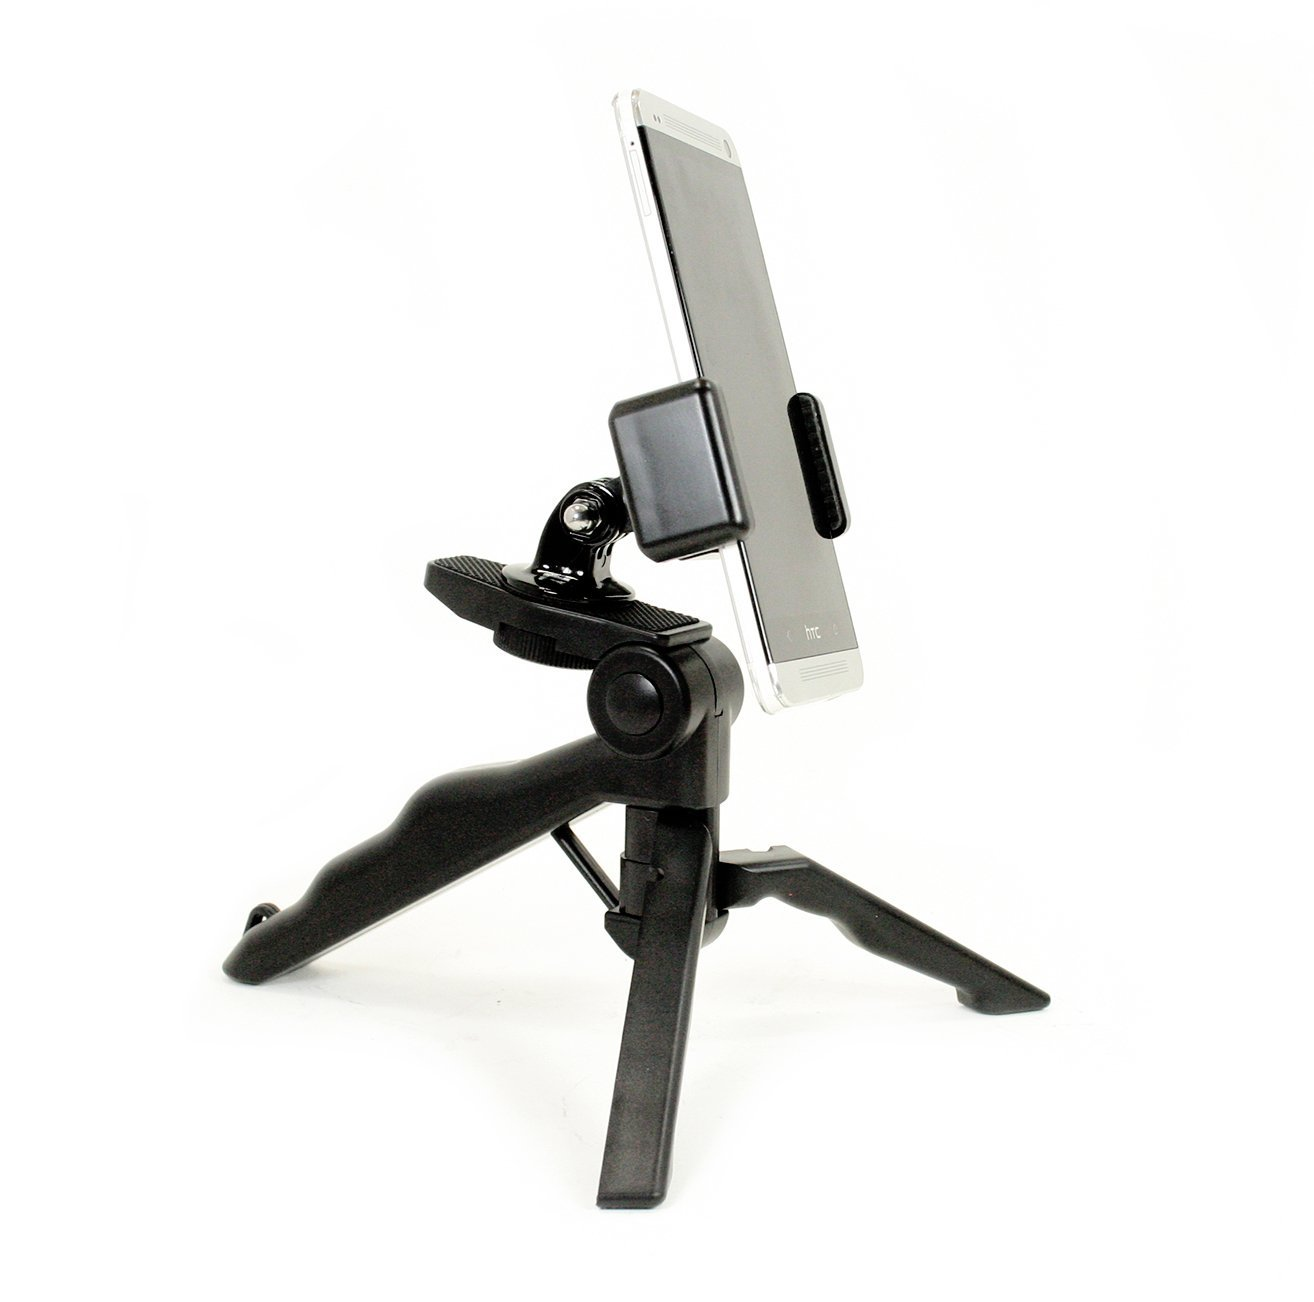 Livestream® - Foldable Tripod with Rotatable Smartphone Clamp. Use for Video Recording, or Live Streaming on Periscope/Meerkat. Operable with Any Phone, or Use with GoPro Camera. Compatible with iPhones, Samsung Galaxy, HTC, etc. Doubles as Hand-Held Mount for Video Stabilization.